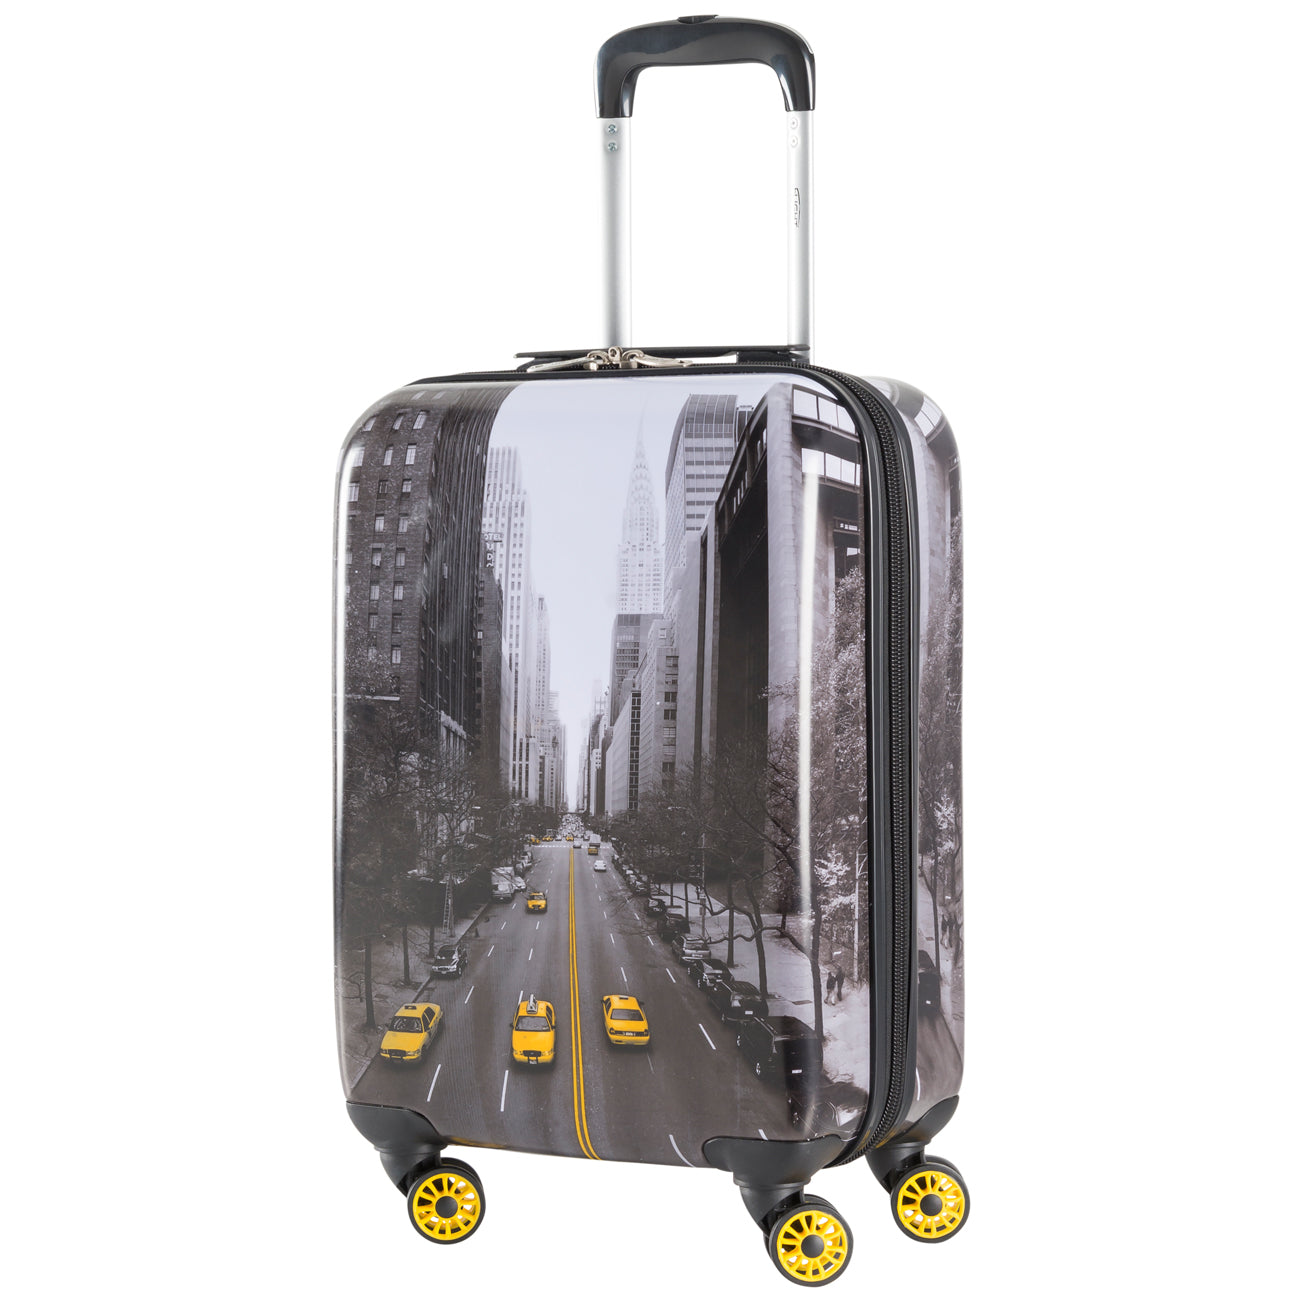 CLAUDIN Cabin Suitcases & Hold Luggage